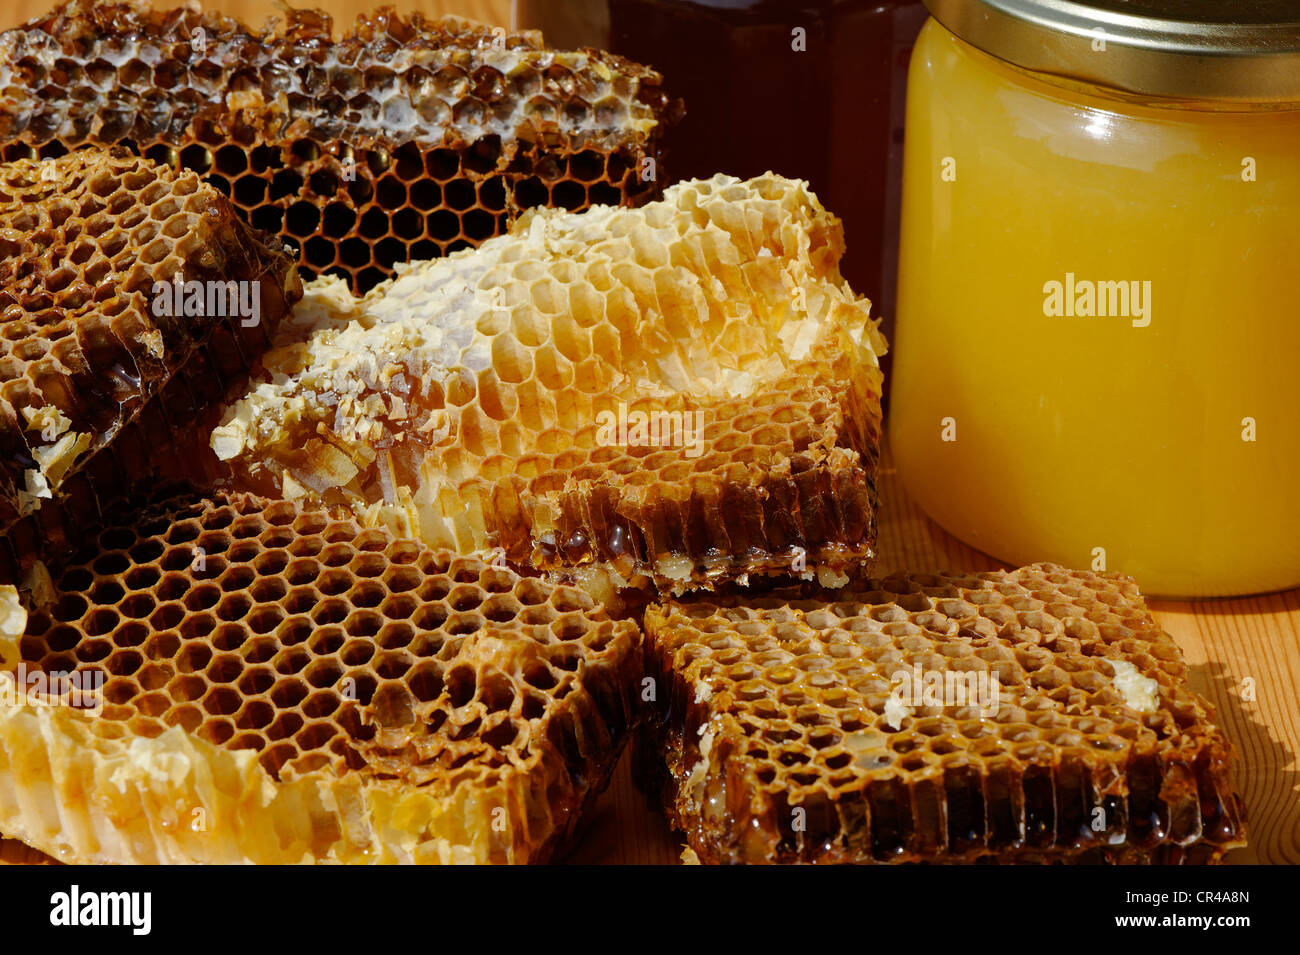 Spring honey in jars with honeycombs containing honey - Stock Image